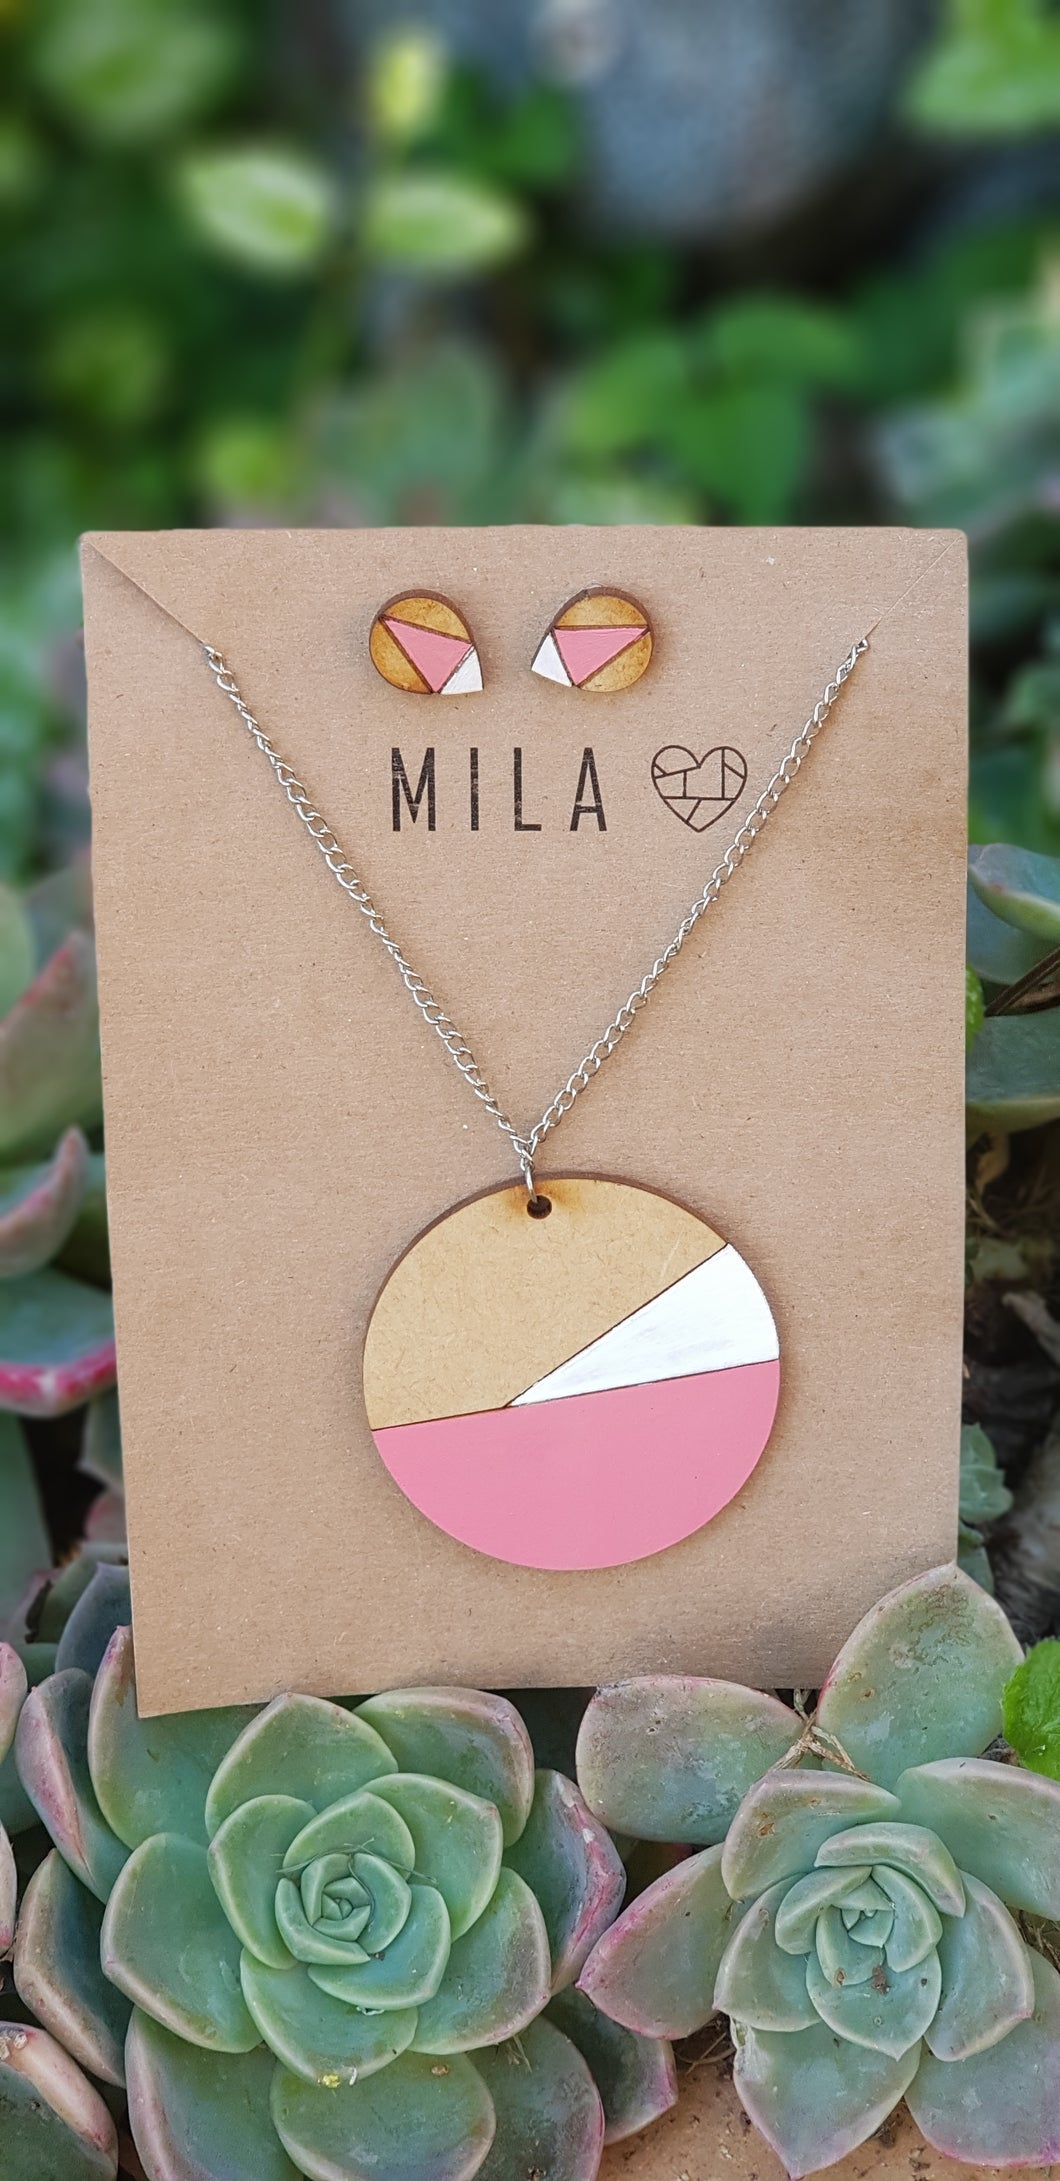 Mila Pink Wooden Circle Necklace & Earrings